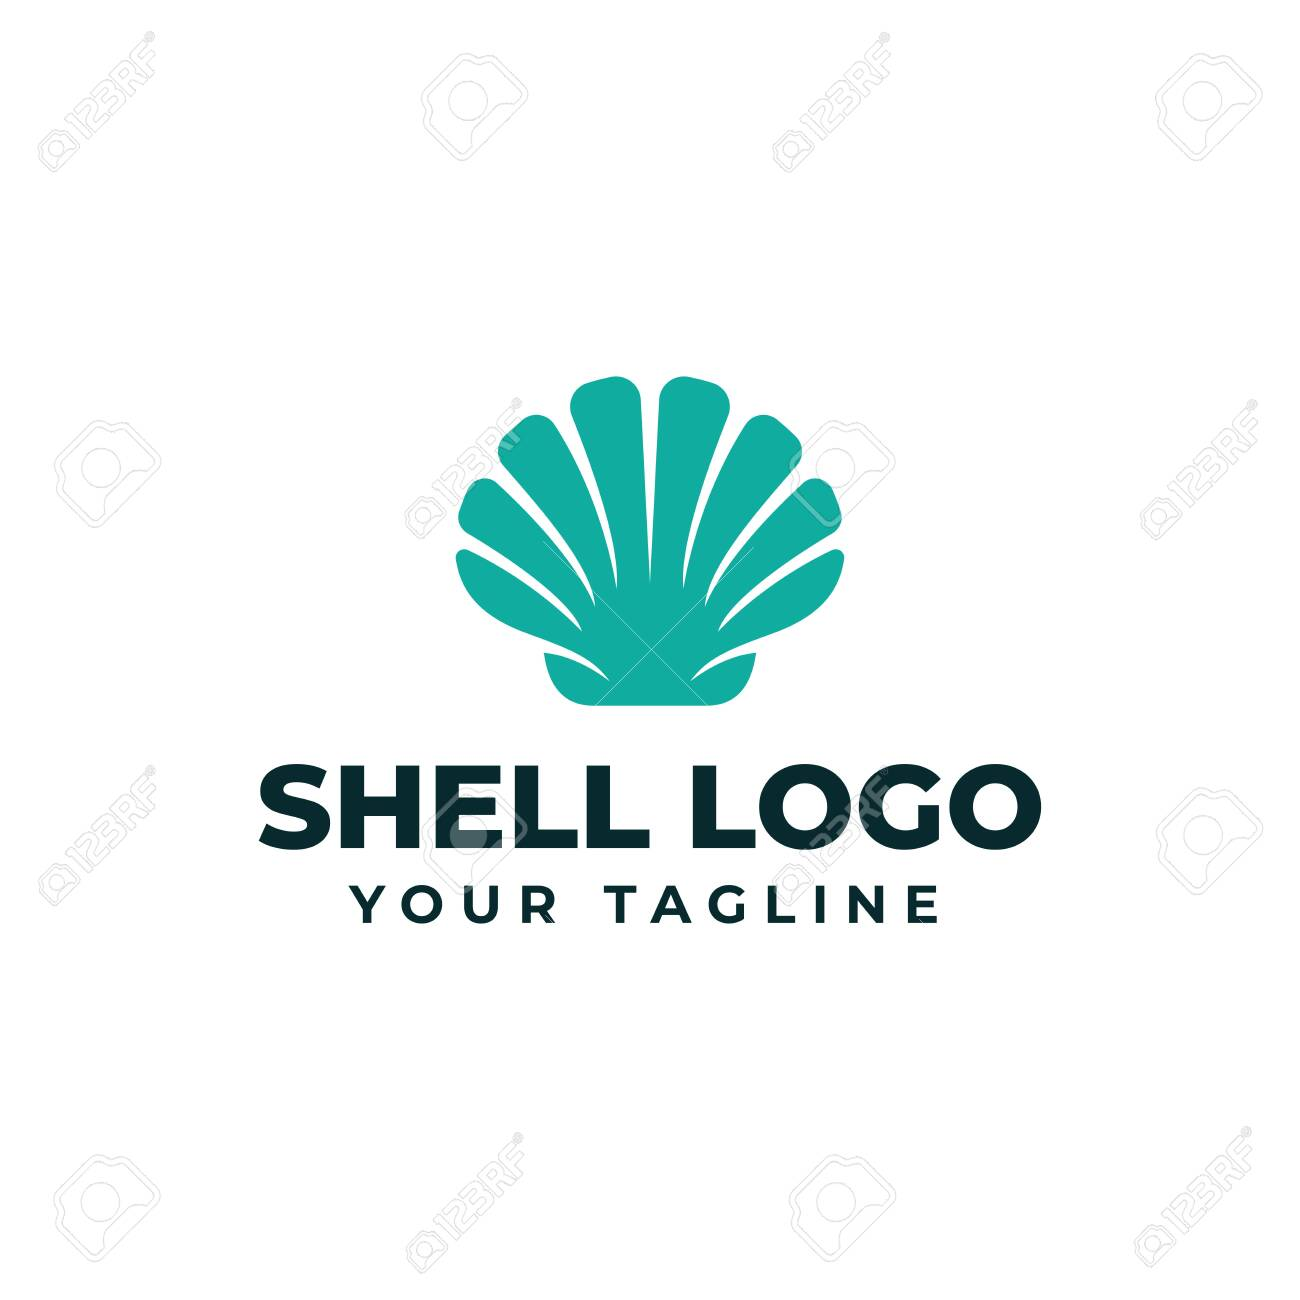 Sea Shell Pearl Oyster Seafood Restaurant Logo Design Template Royalty Free Cliparts Vectors And Stock Illustration Image 133737178